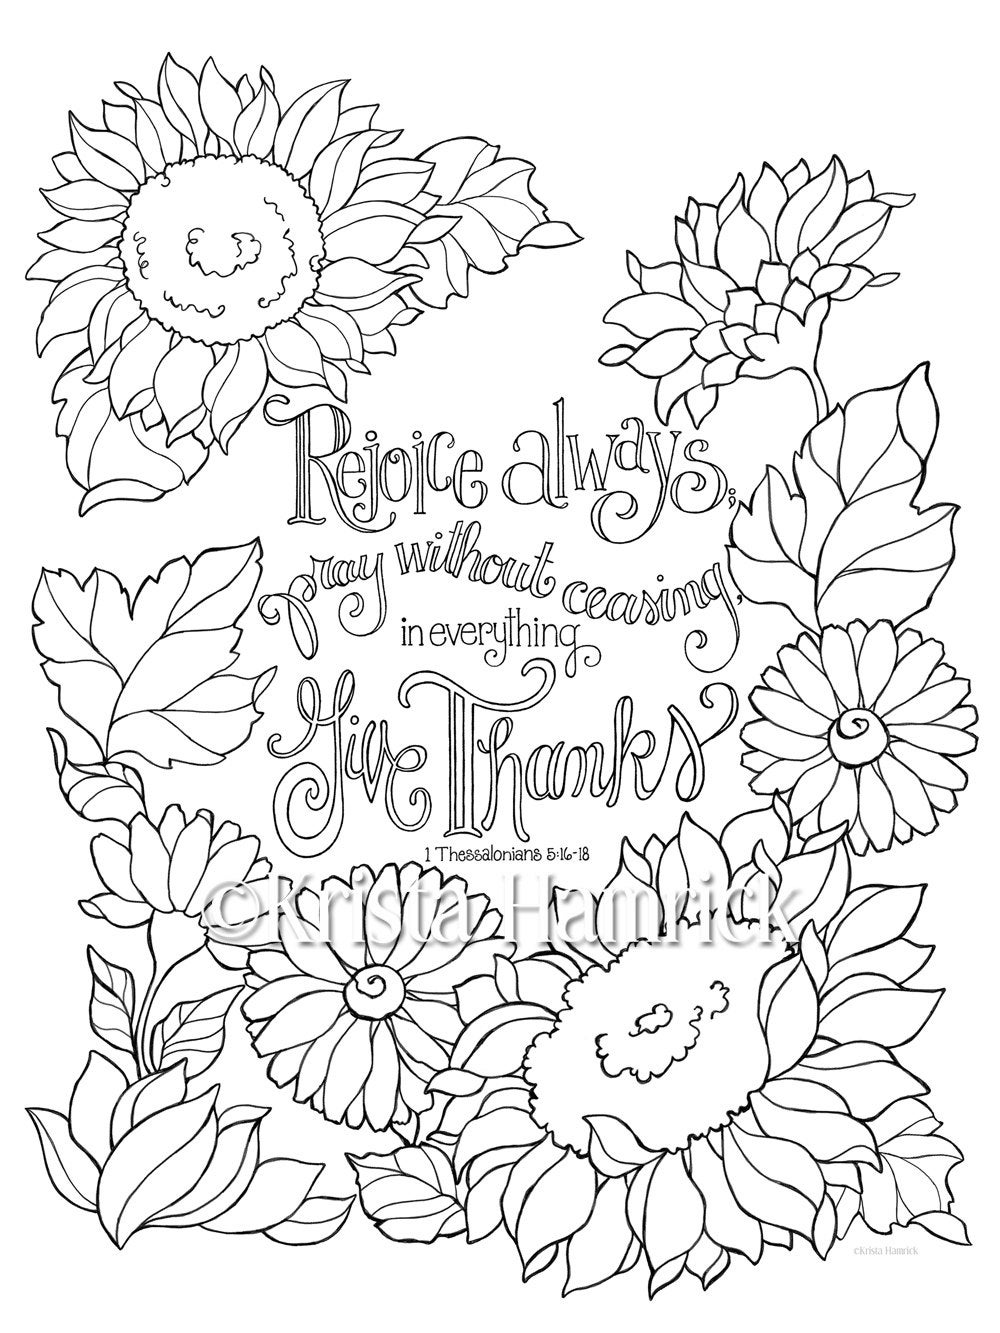 colouring pages bible rejoice always coloring page in two sizes 85x11 and bible pages colouring bible